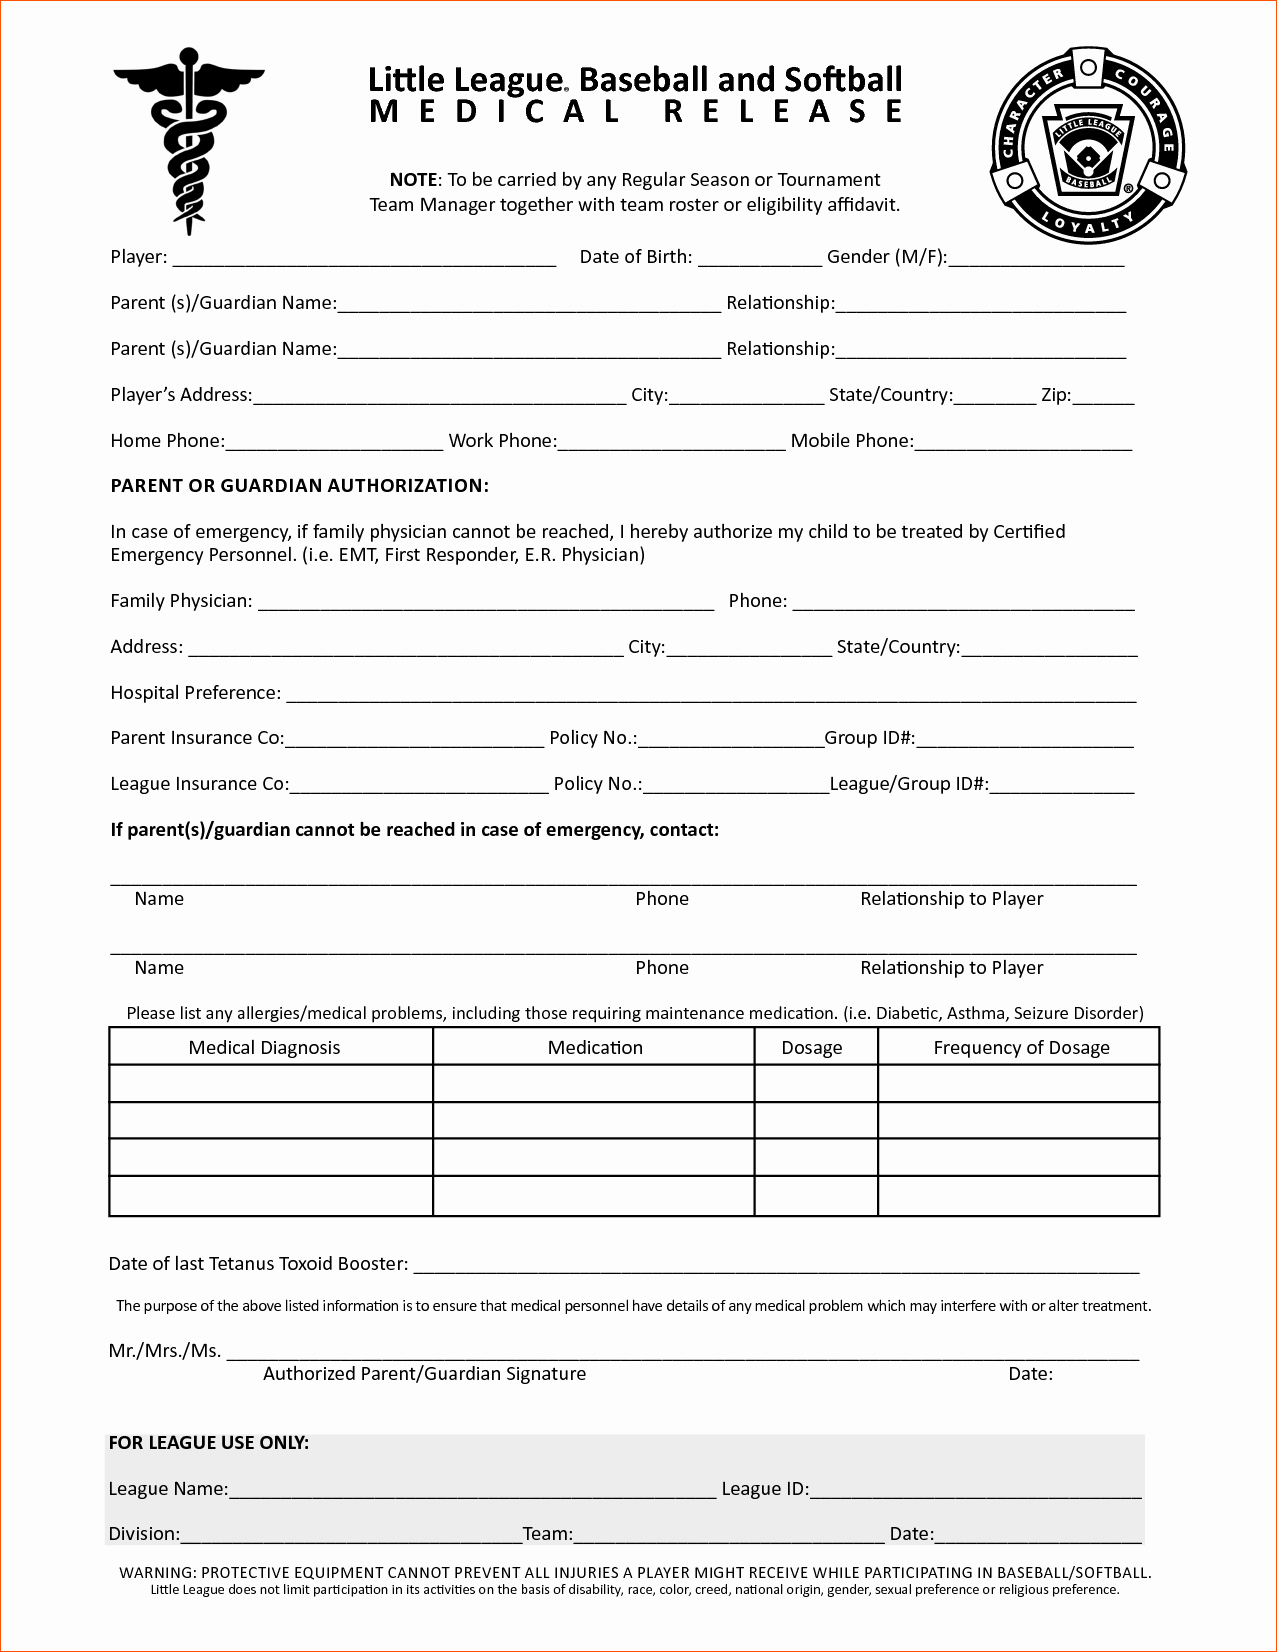 Doctor Sign In Sheet Template Beautiful Blank Medical forms Mughals